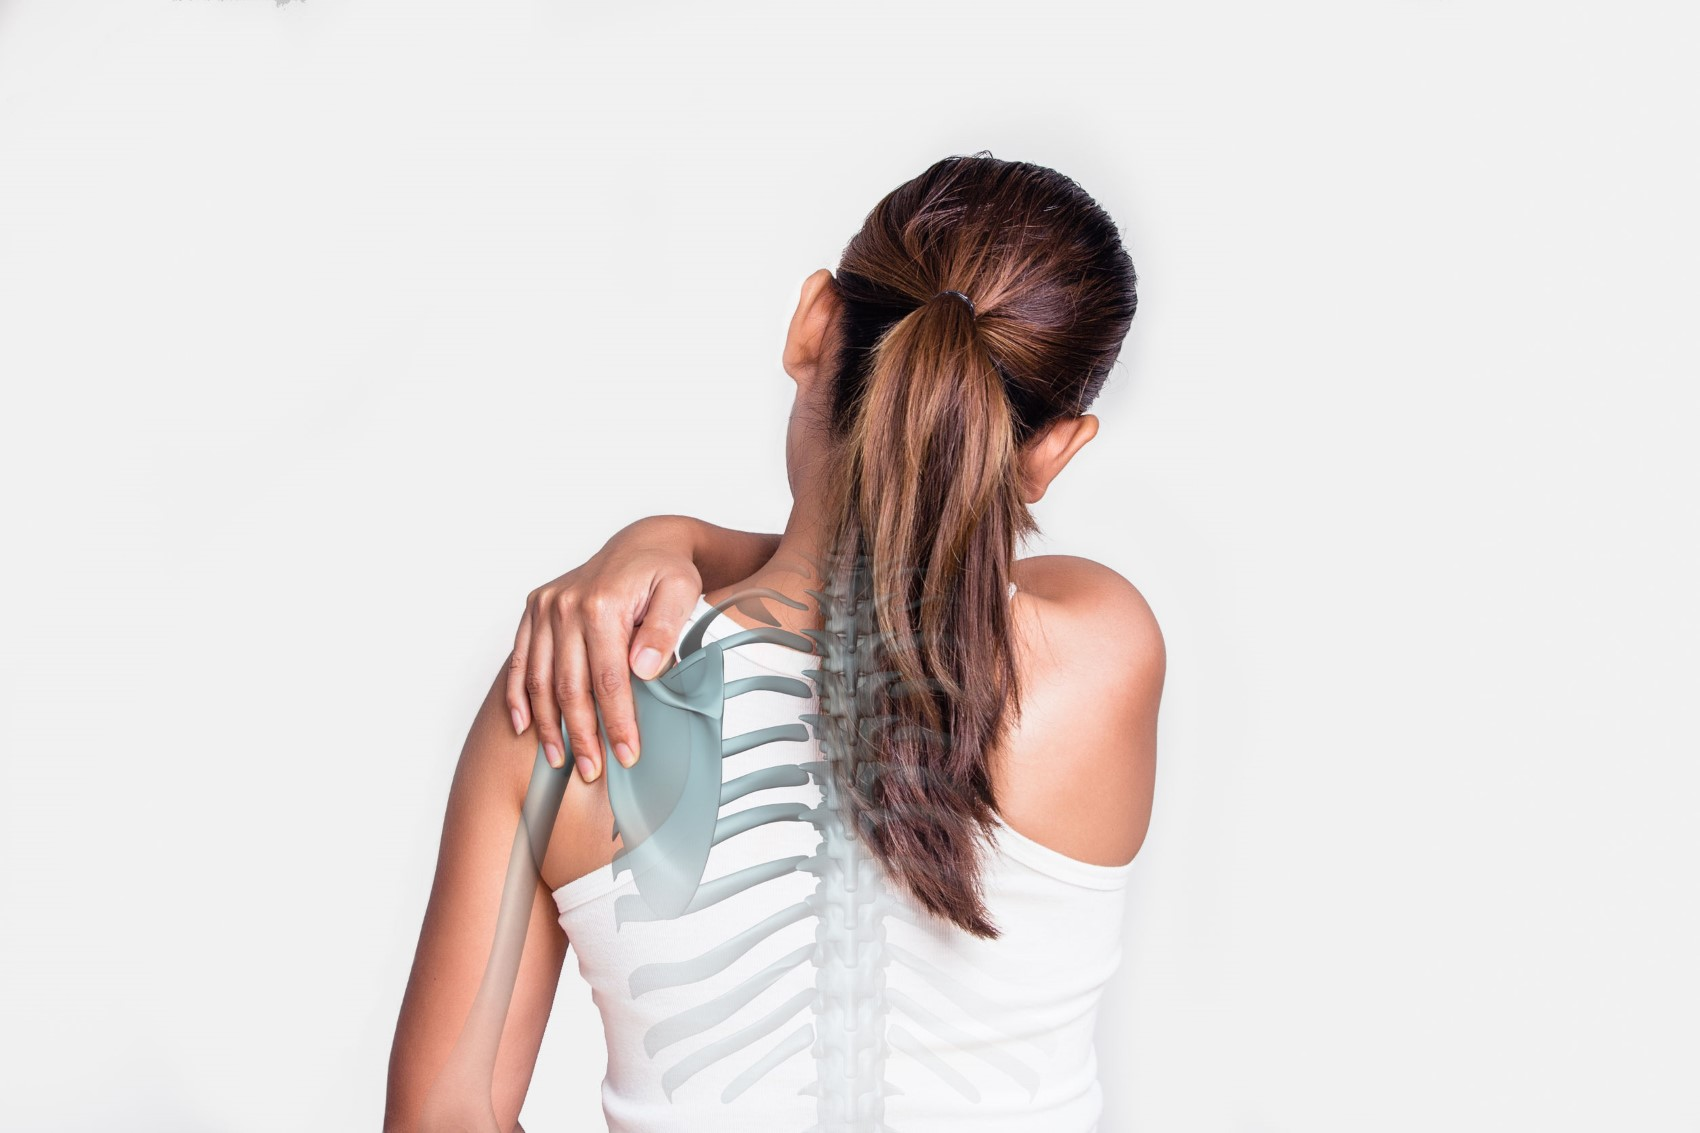 What is a Physiatrist? - Asian woman with shoulder pain